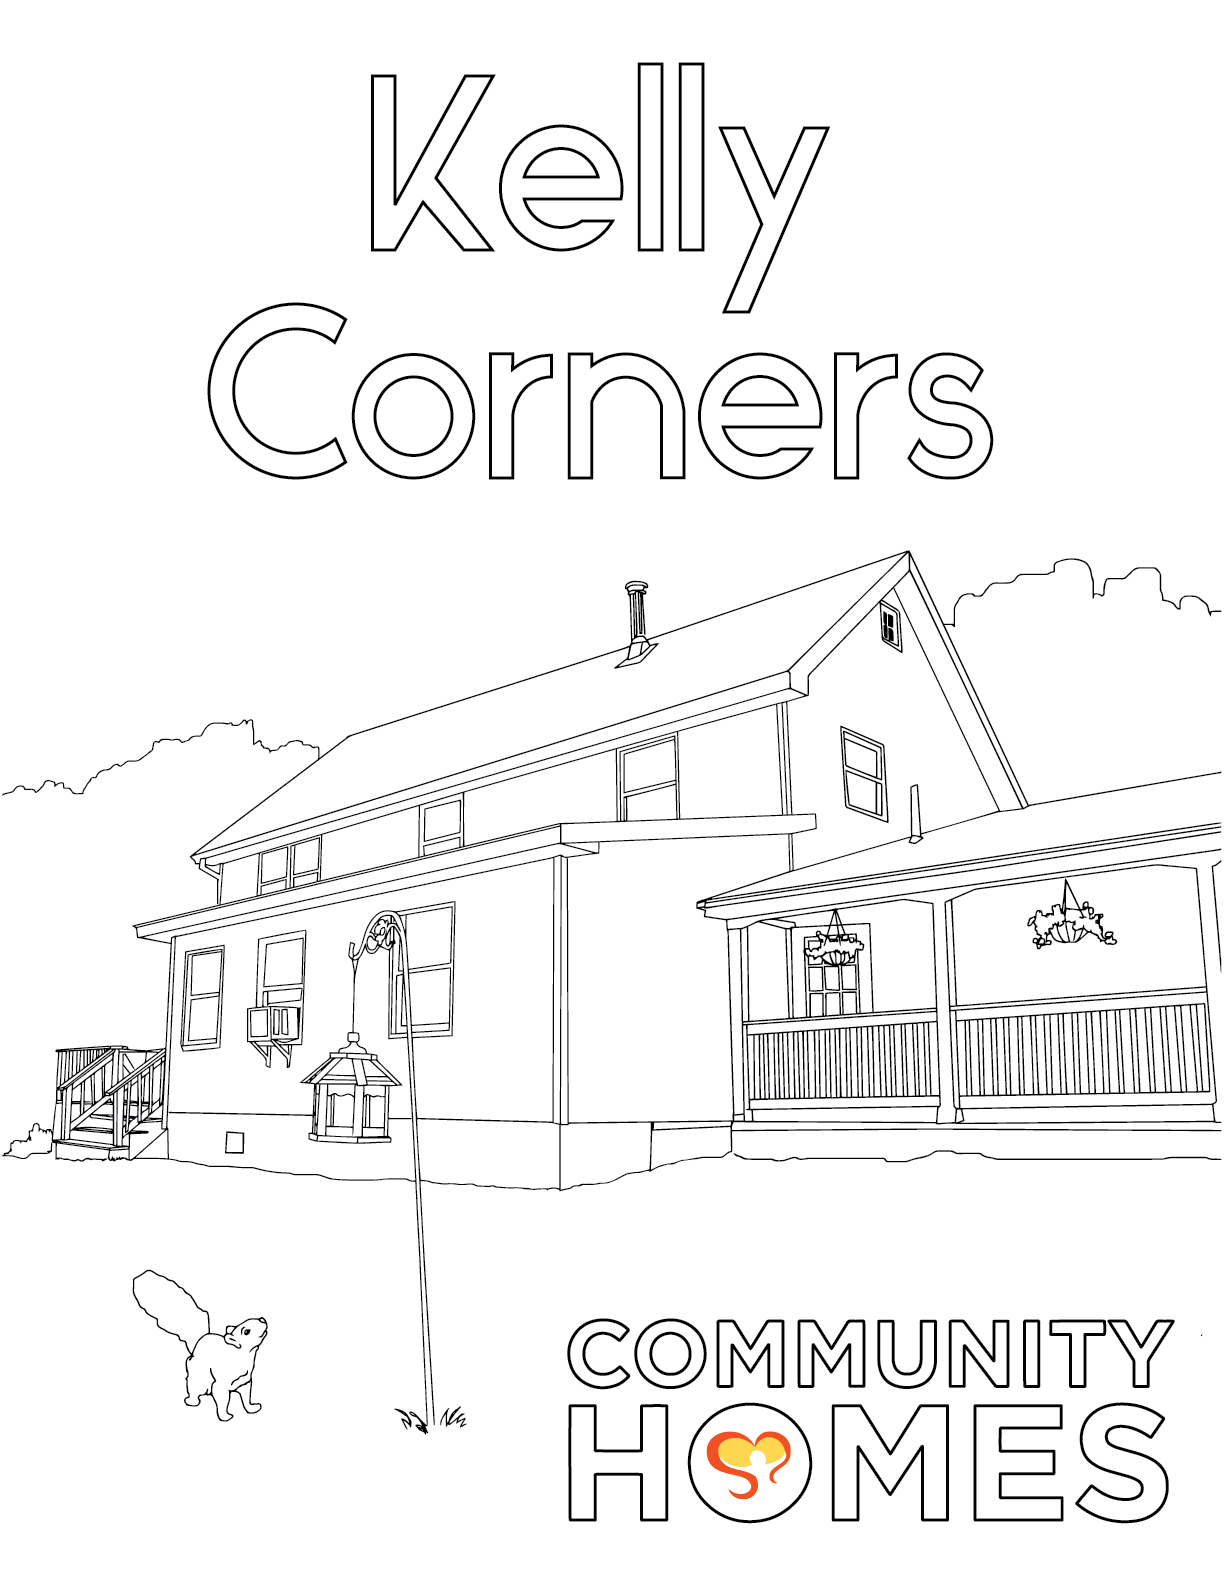 Kelly Corners 2x png A2lCFGKP - Johnston Circle and Kelly Corners - Fun Art Friday